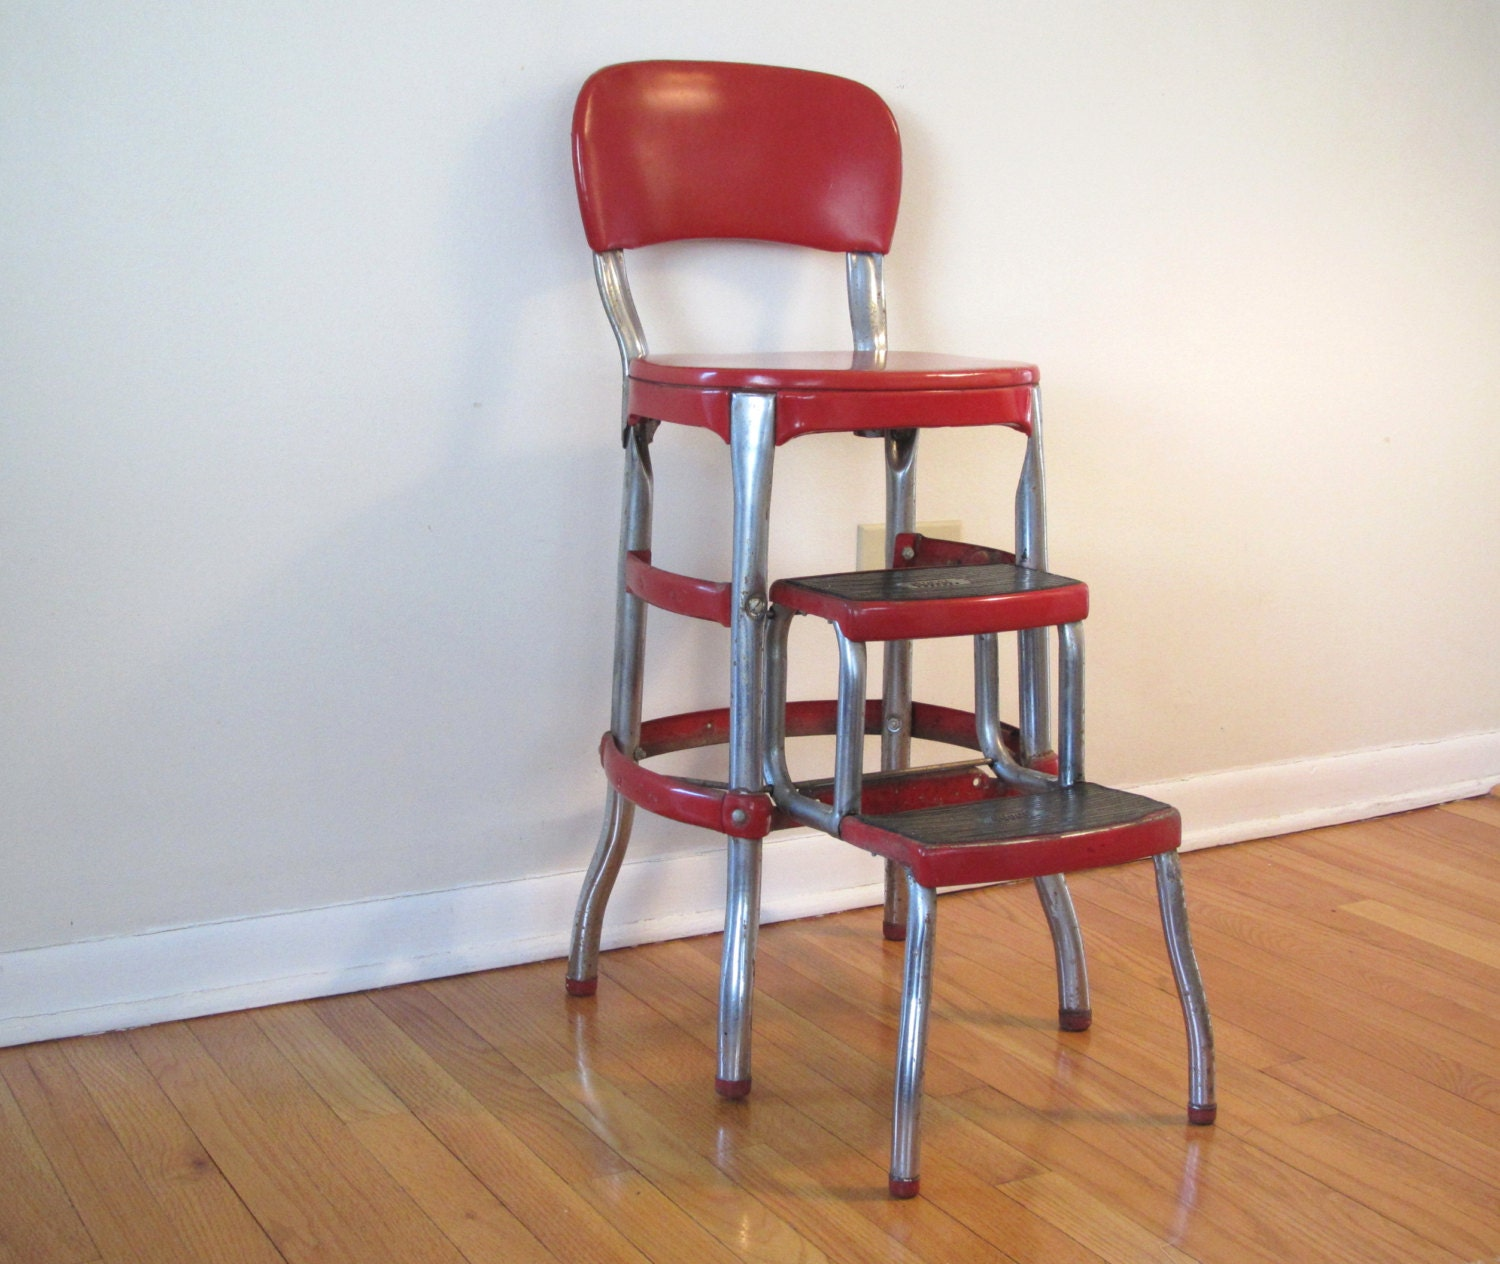 Vintage Cosco Stool  Retro Red  Kitchen Stool. Living Room Restaurant Templestowe. Living Room Color Schemes With Gray. Living Room Chairs Big Lots. Small Livingroom Decor. Living Room Sets At Farmers Furniture. Living Room Chairs Halifax. Vintage Style Living Room Chairs. Something Found In A Living Room